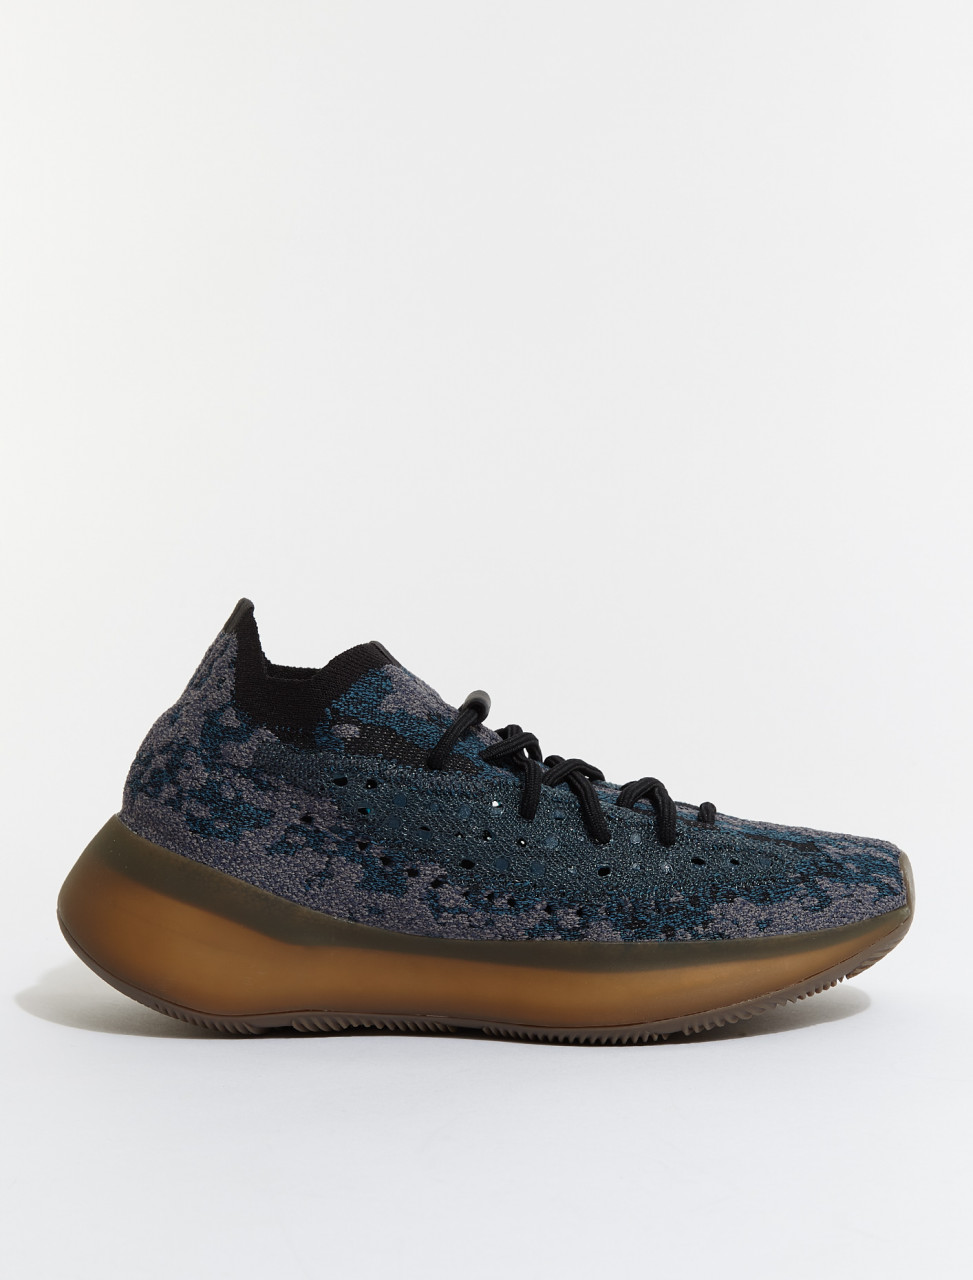 GZ0454 ADIDAS YEEZY BOOST 380 SNEAKER IN COVELLITE